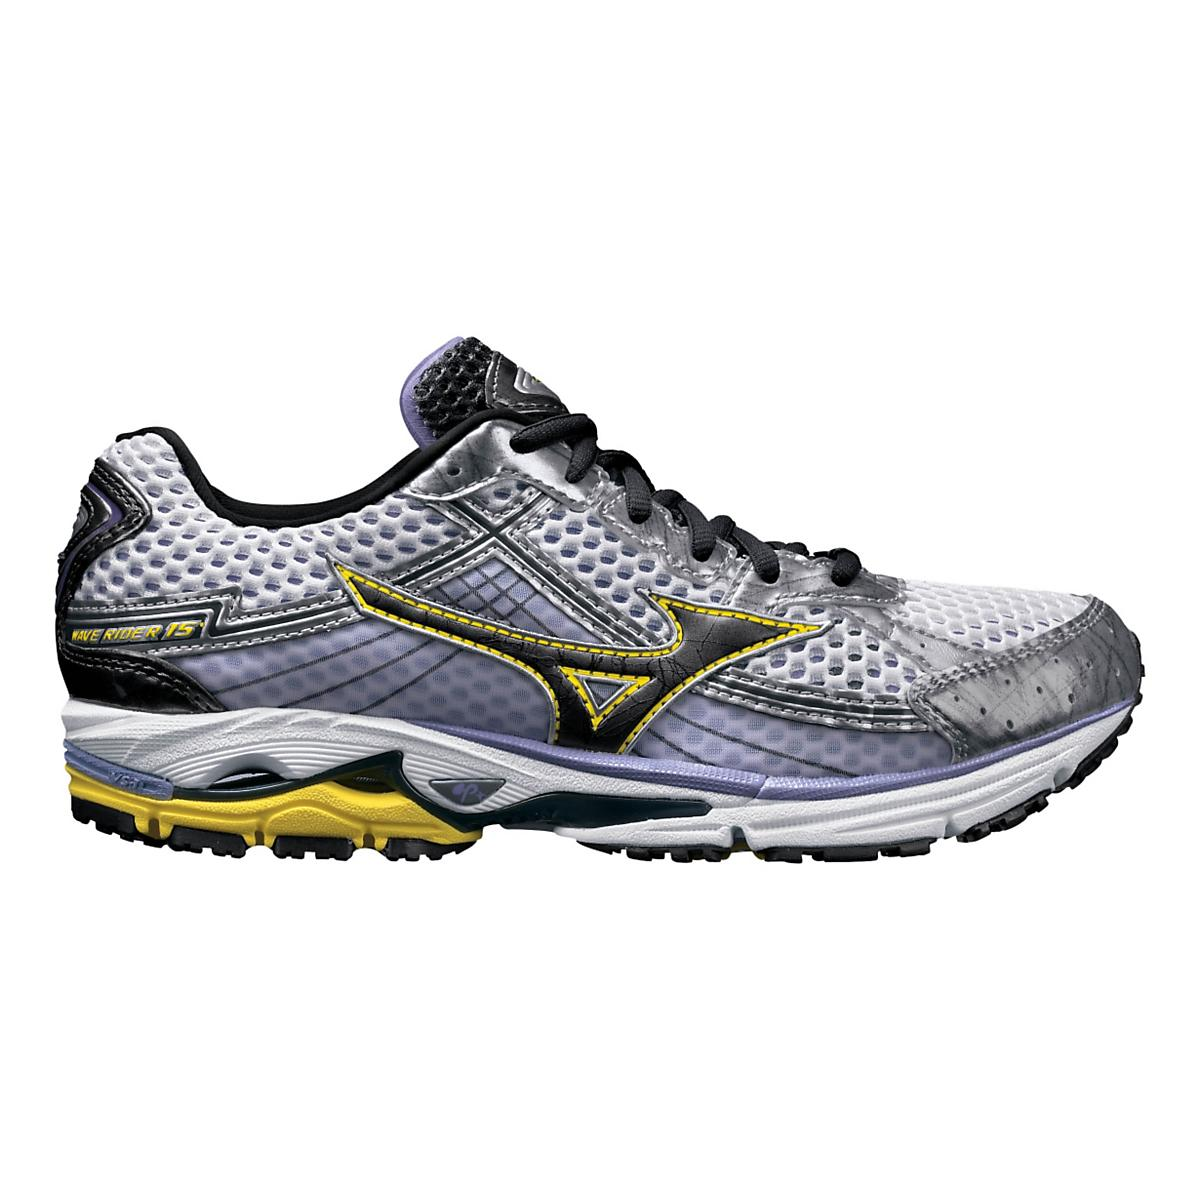 0c3b421d23f3 Womens Mizuno Wave Rider 15 Running Shoe at Road Runner Sports